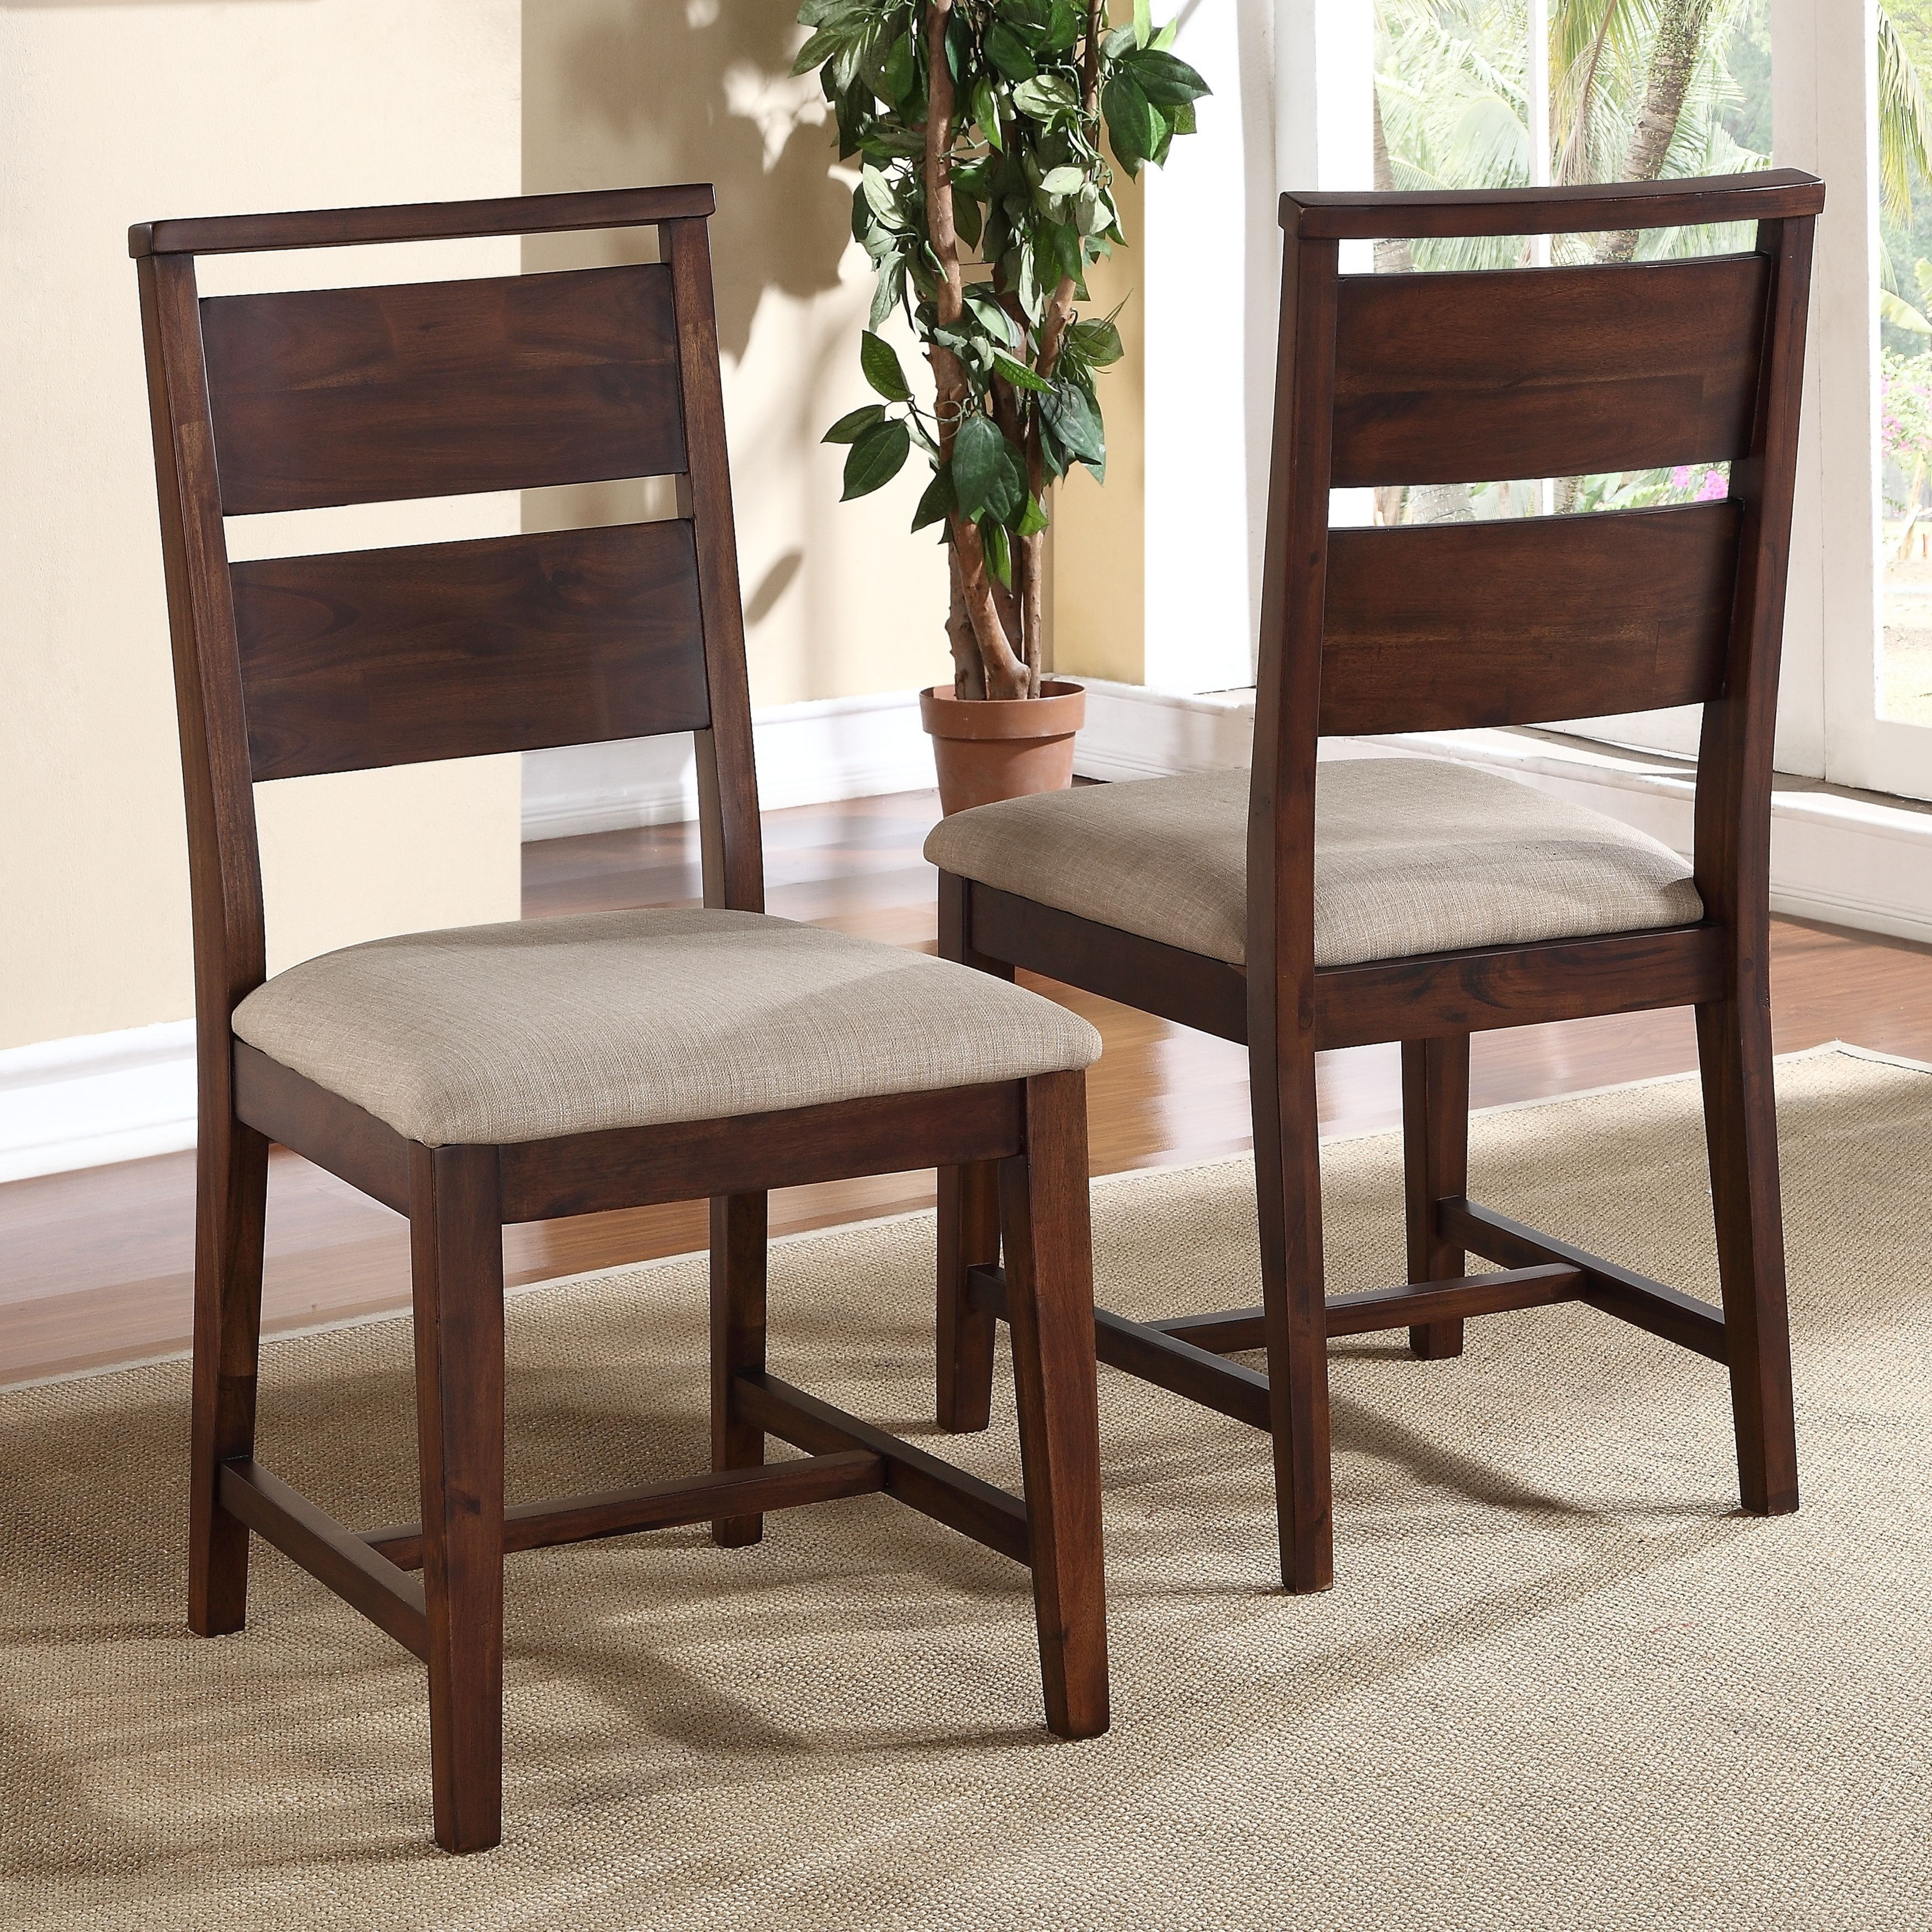 Solid Wood Modern Dining Chair Set Of 2